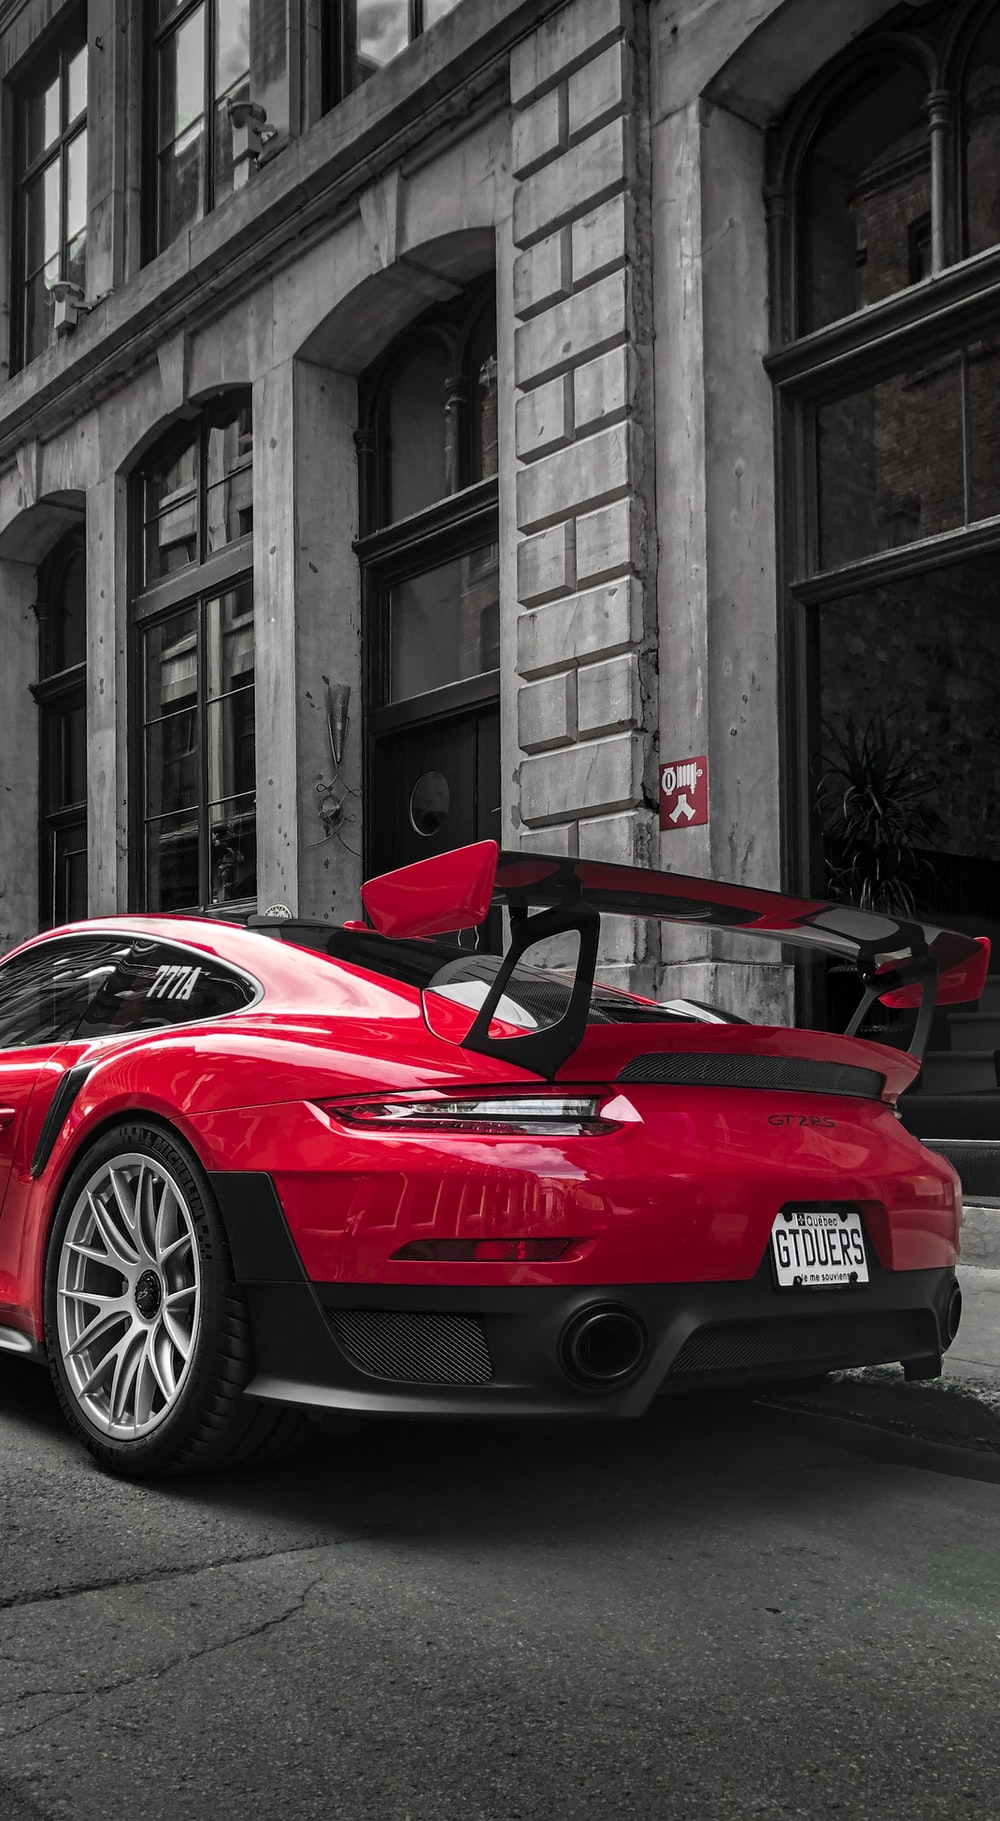 photography of red Porsche sports car parked at city roadside